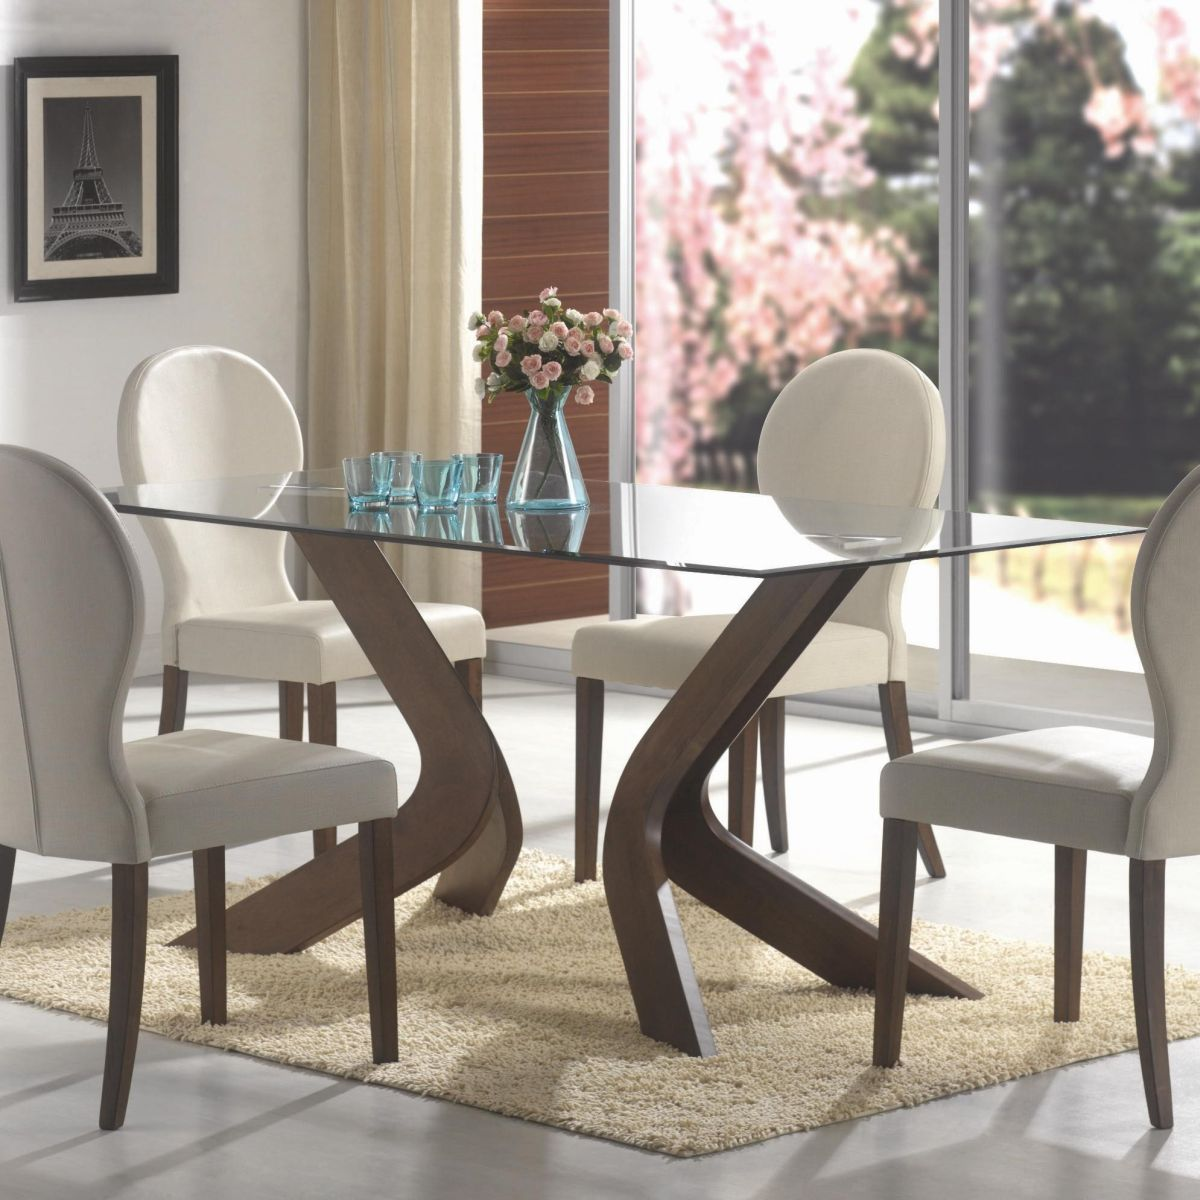 Dining table top design ideas - Oval Back Dining Chairs And Glass Top Table